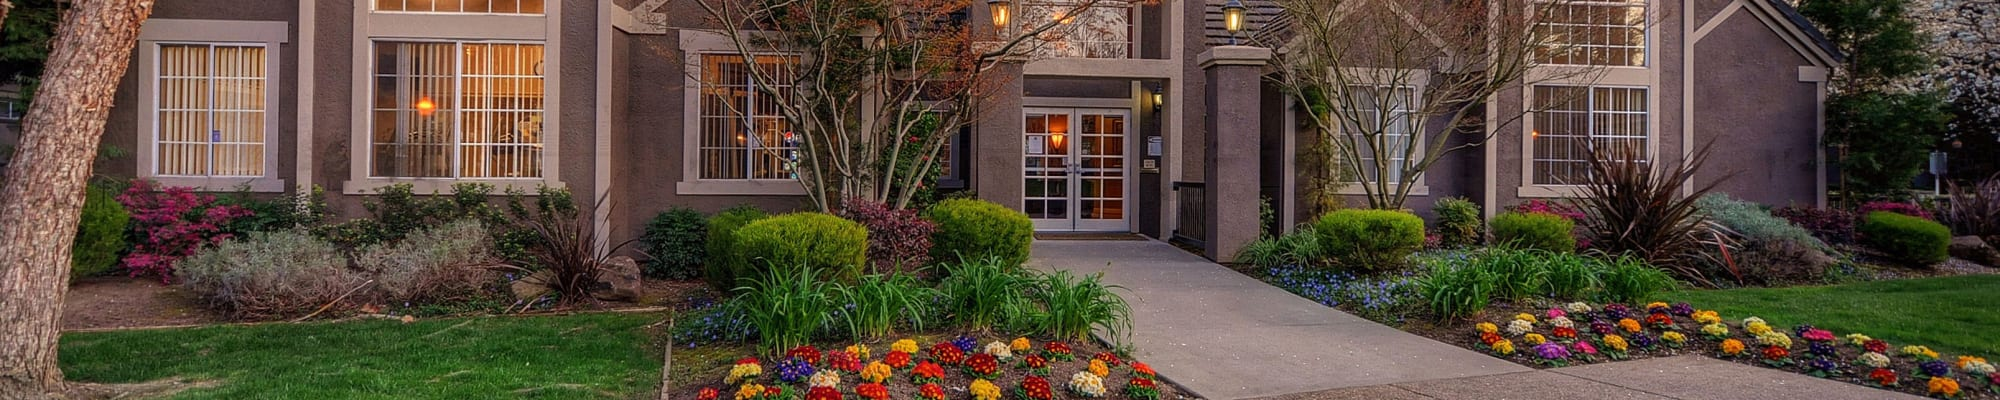 Schedule a tour to see Larkspur Woods in Sacramento, California